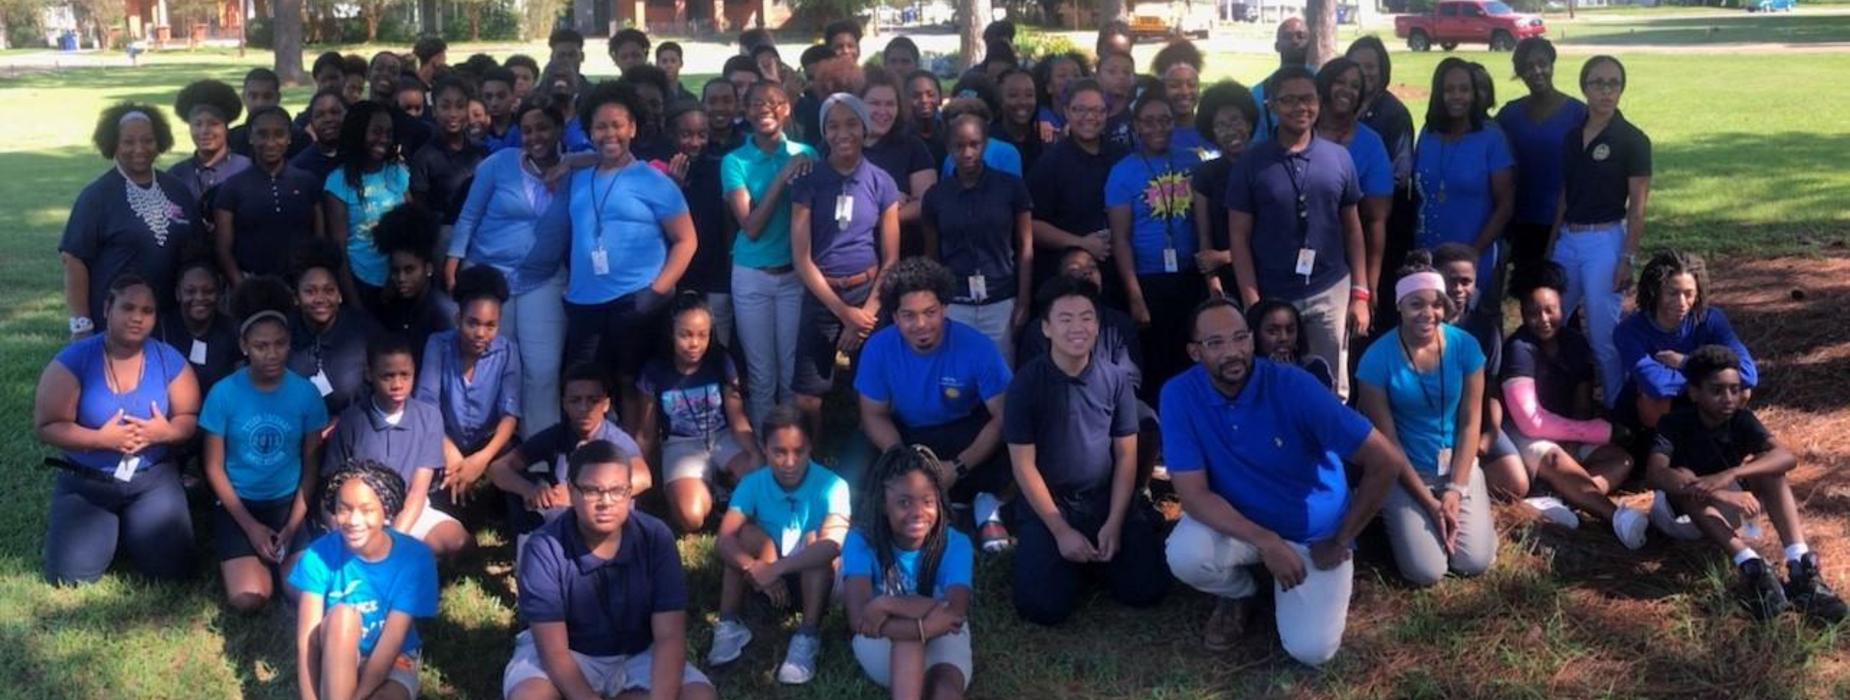 bully prevention participants